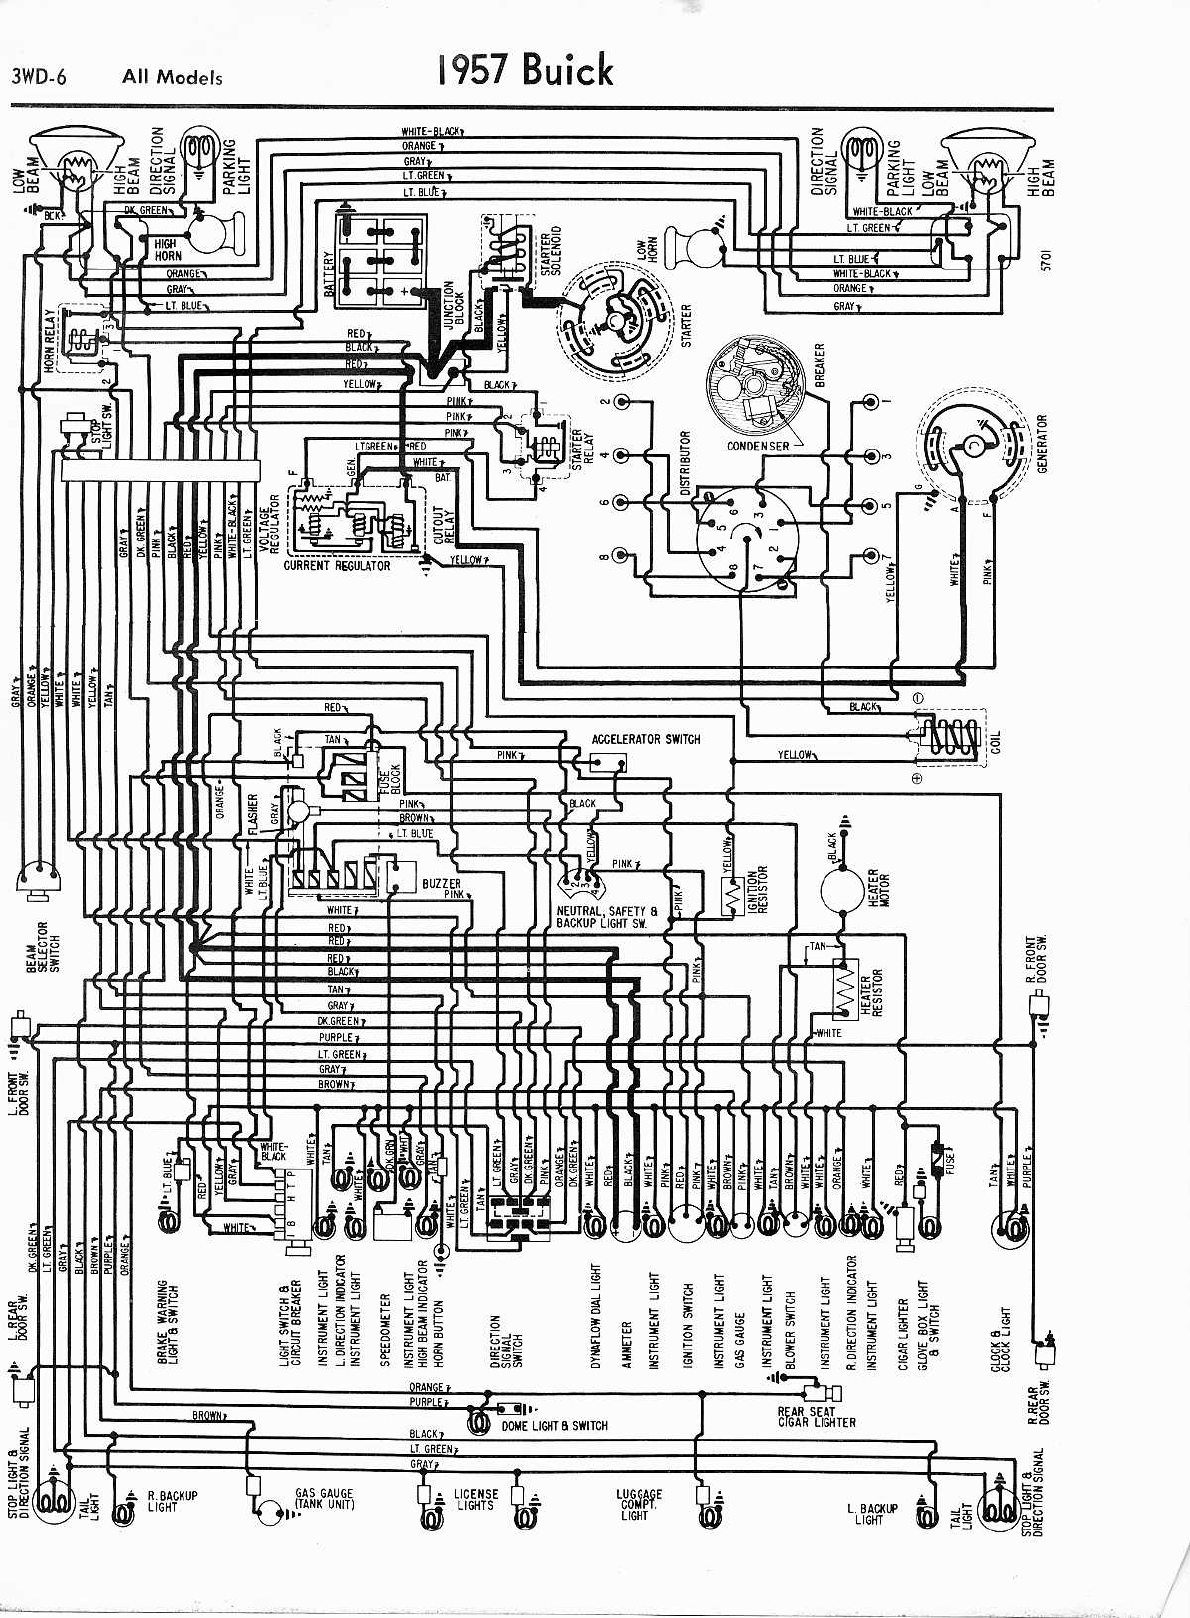 buick rainier wiring diagram buick automotive wiring diagrams buick rainier 1957 1960 misc doents wiring diagrams pdf